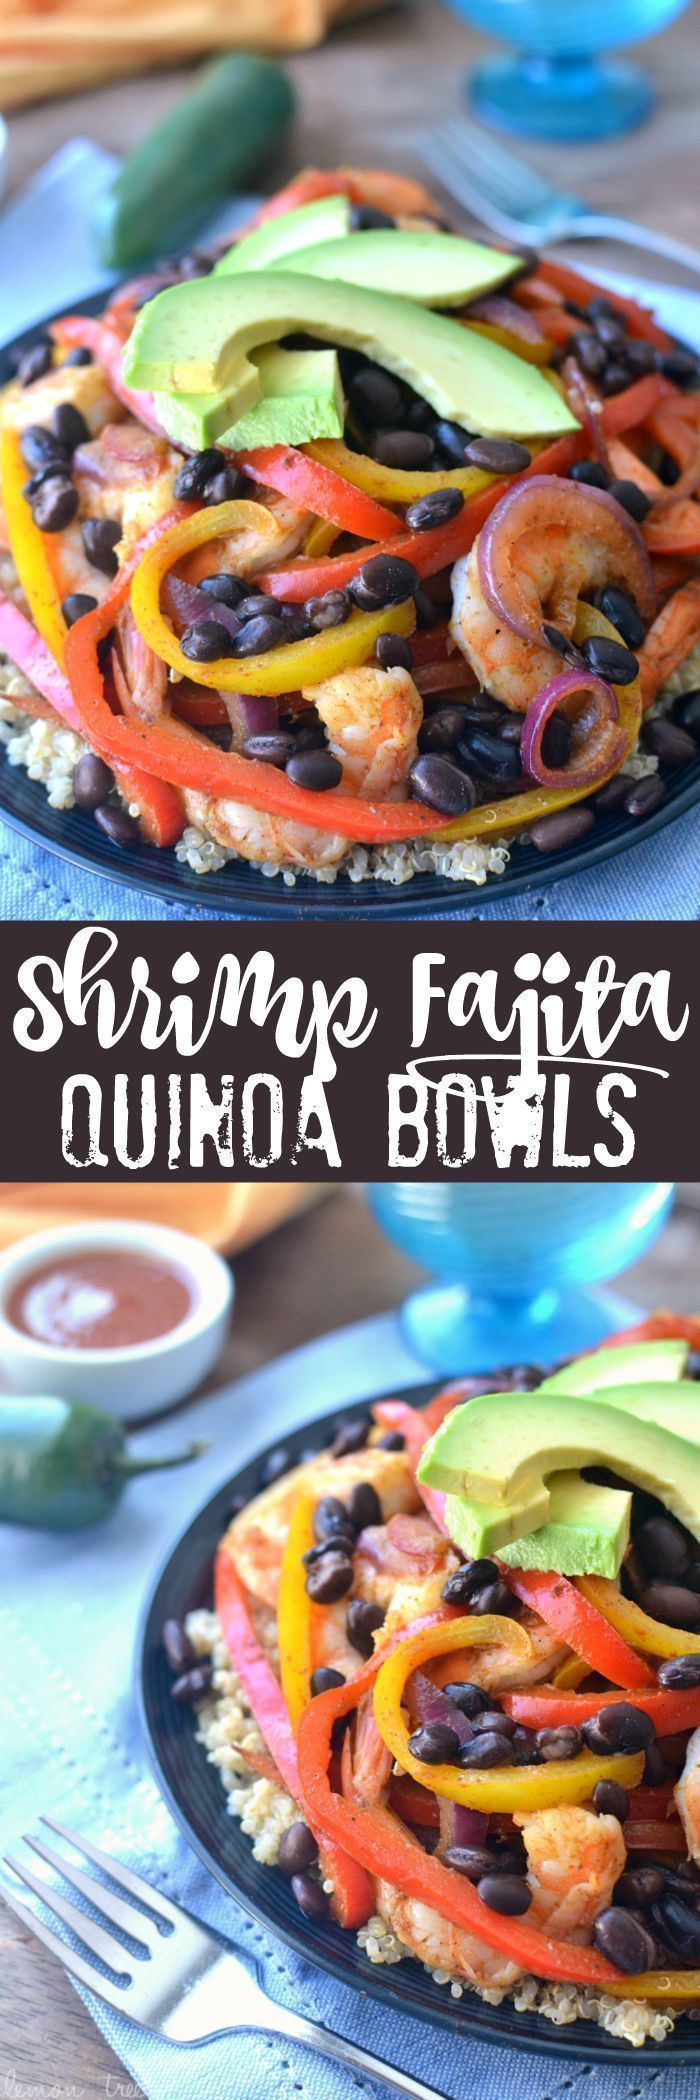 Shrimp Fajita Quinoa Bowls - a healthy, easy, and delicious way to enjoy fajitas! #food #foodporn #yum #instafood #socialsteeze #yummy #amazing #instagood #photooftheday #sweet #dinner #lunch #breakfast #fresh #tasty #food #delish #delicious #eating #foodpic #foodpics #eat #hungry #foodgasm #hot #foods #shrimpfajitas Shrimp Fajita Quinoa Bowls - a healthy, easy, and delicious way to enjoy fajitas! #food #foodporn #yum #instafood #socialsteeze #yummy #amazing #instagood #photooftheday #sweet #din #shrimpfajitas